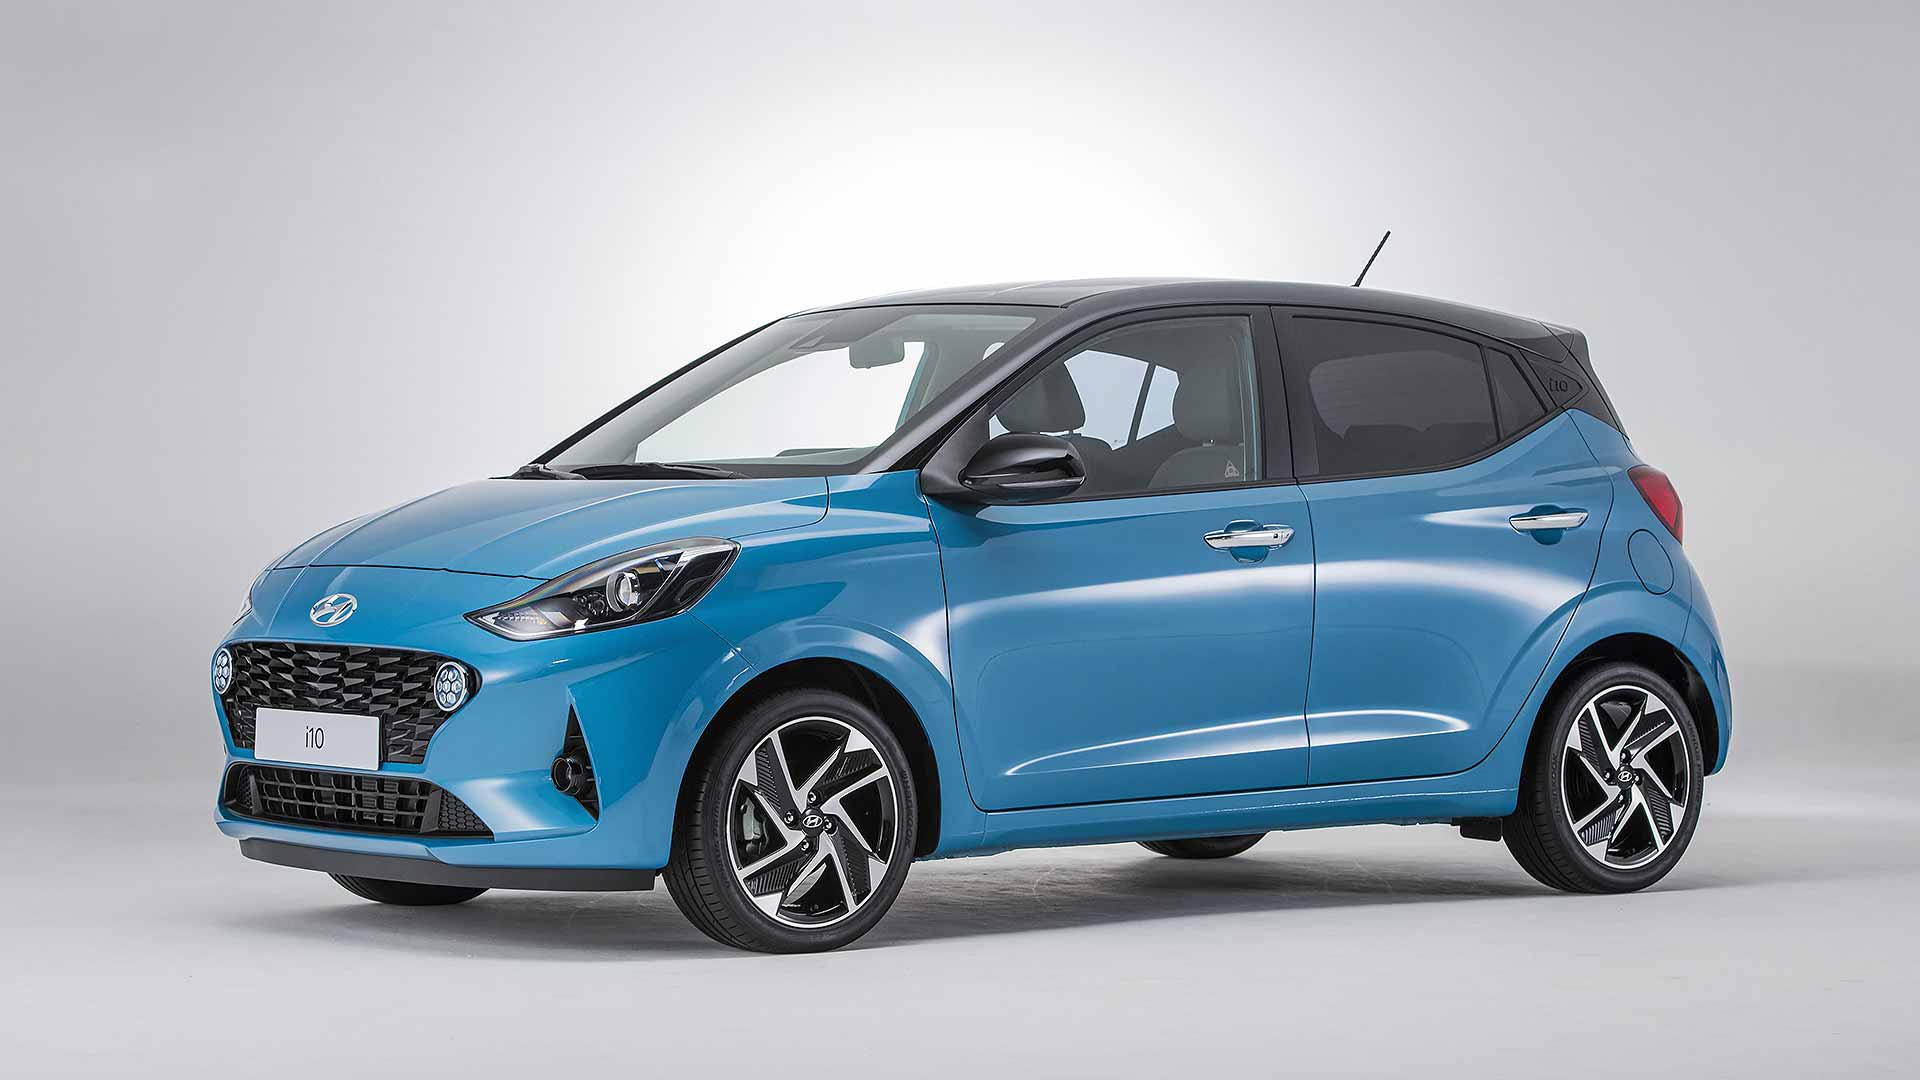 new hyundai i10 city car priced from 12 495. Black Bedroom Furniture Sets. Home Design Ideas